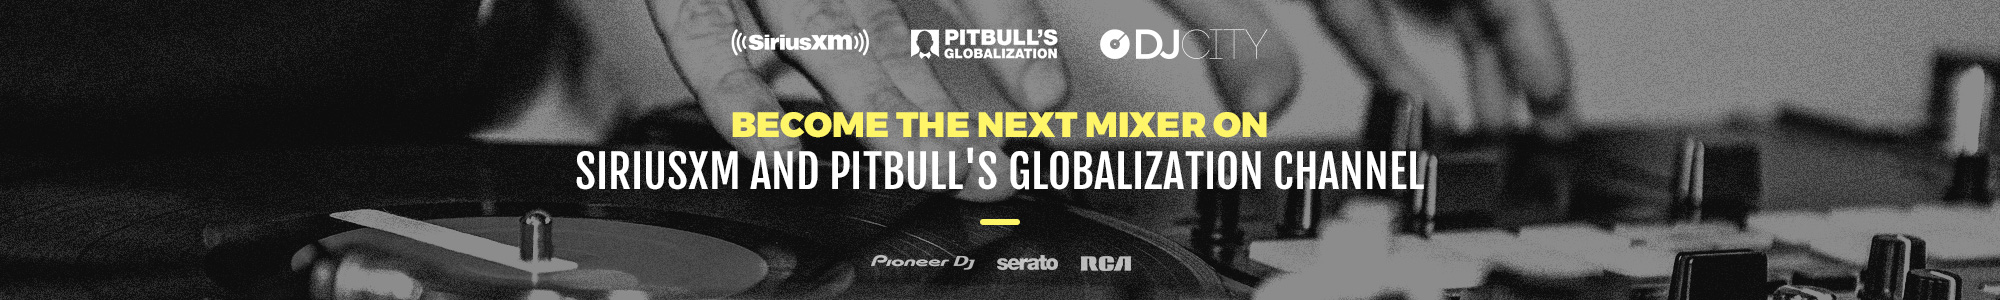 Become the Next Mixer on Pitbull's Globalization Contest